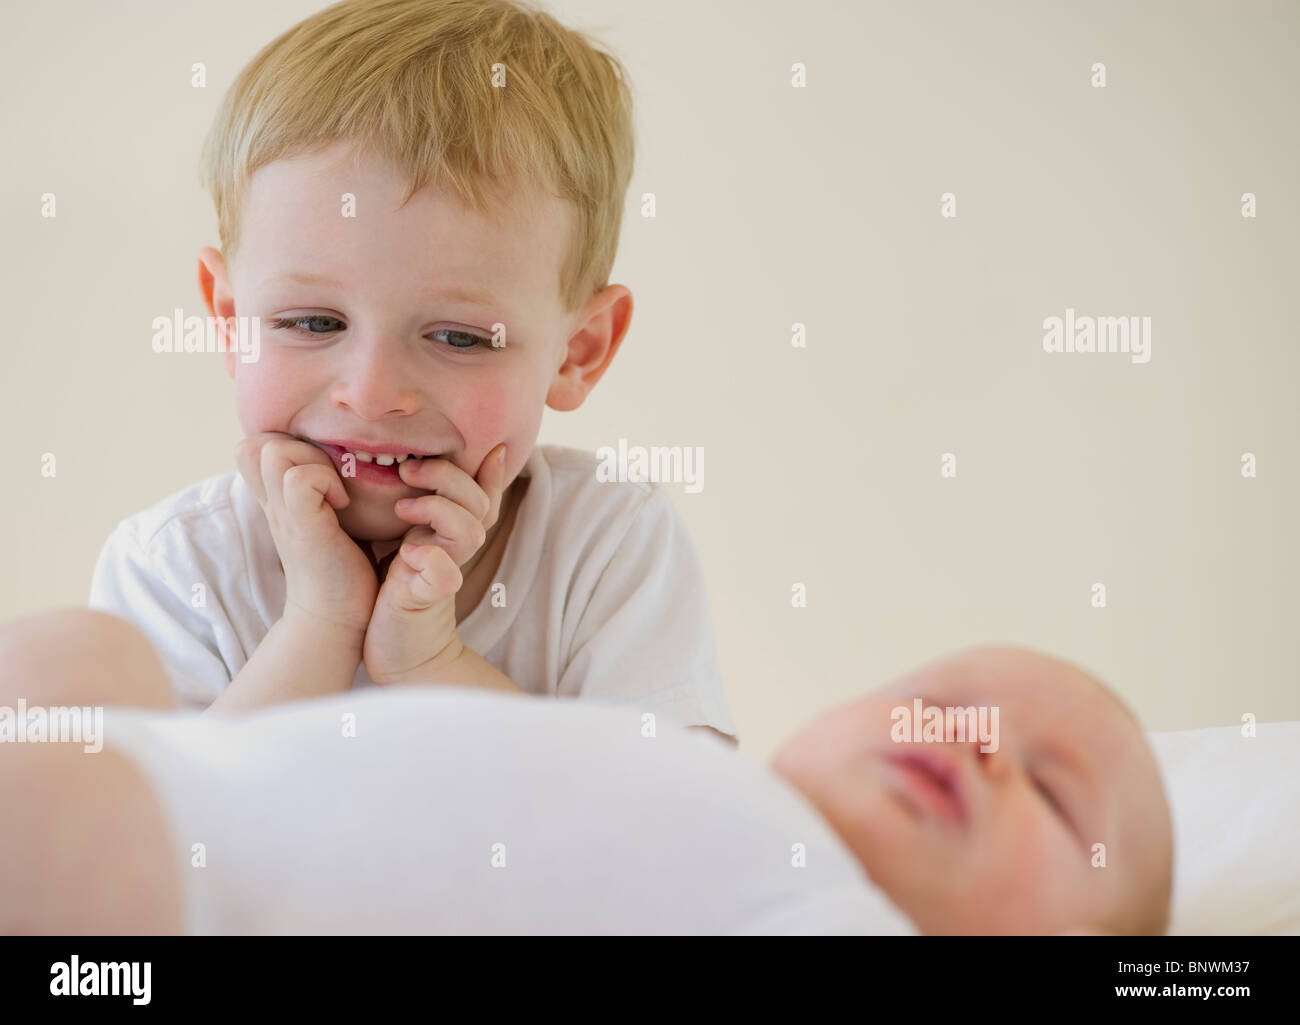 Brother watching his baby brother sleep - Stock Image